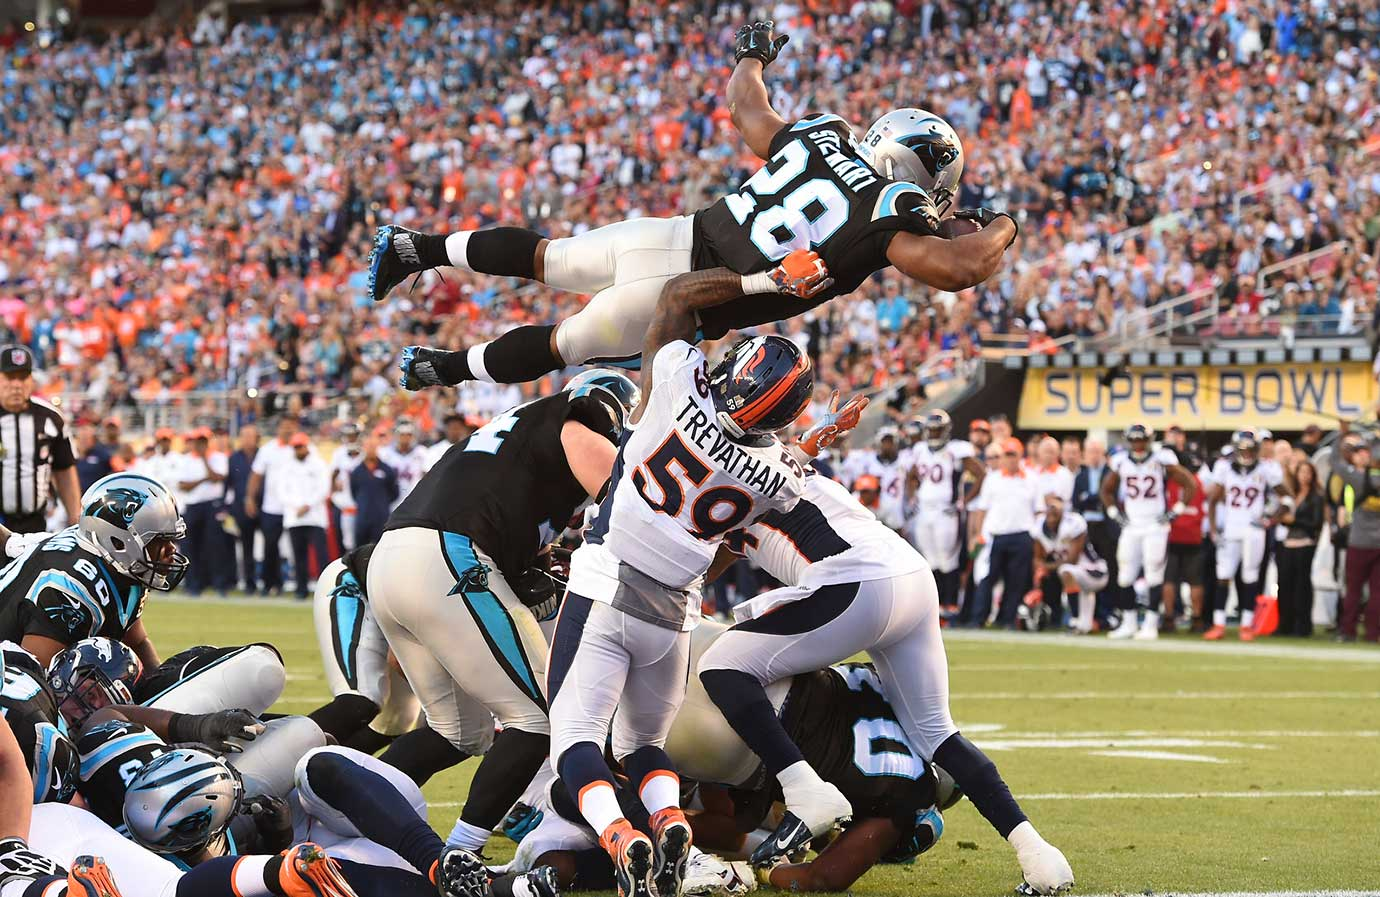 Jonathan Stewart carried the ball 12 times for 29 yards.